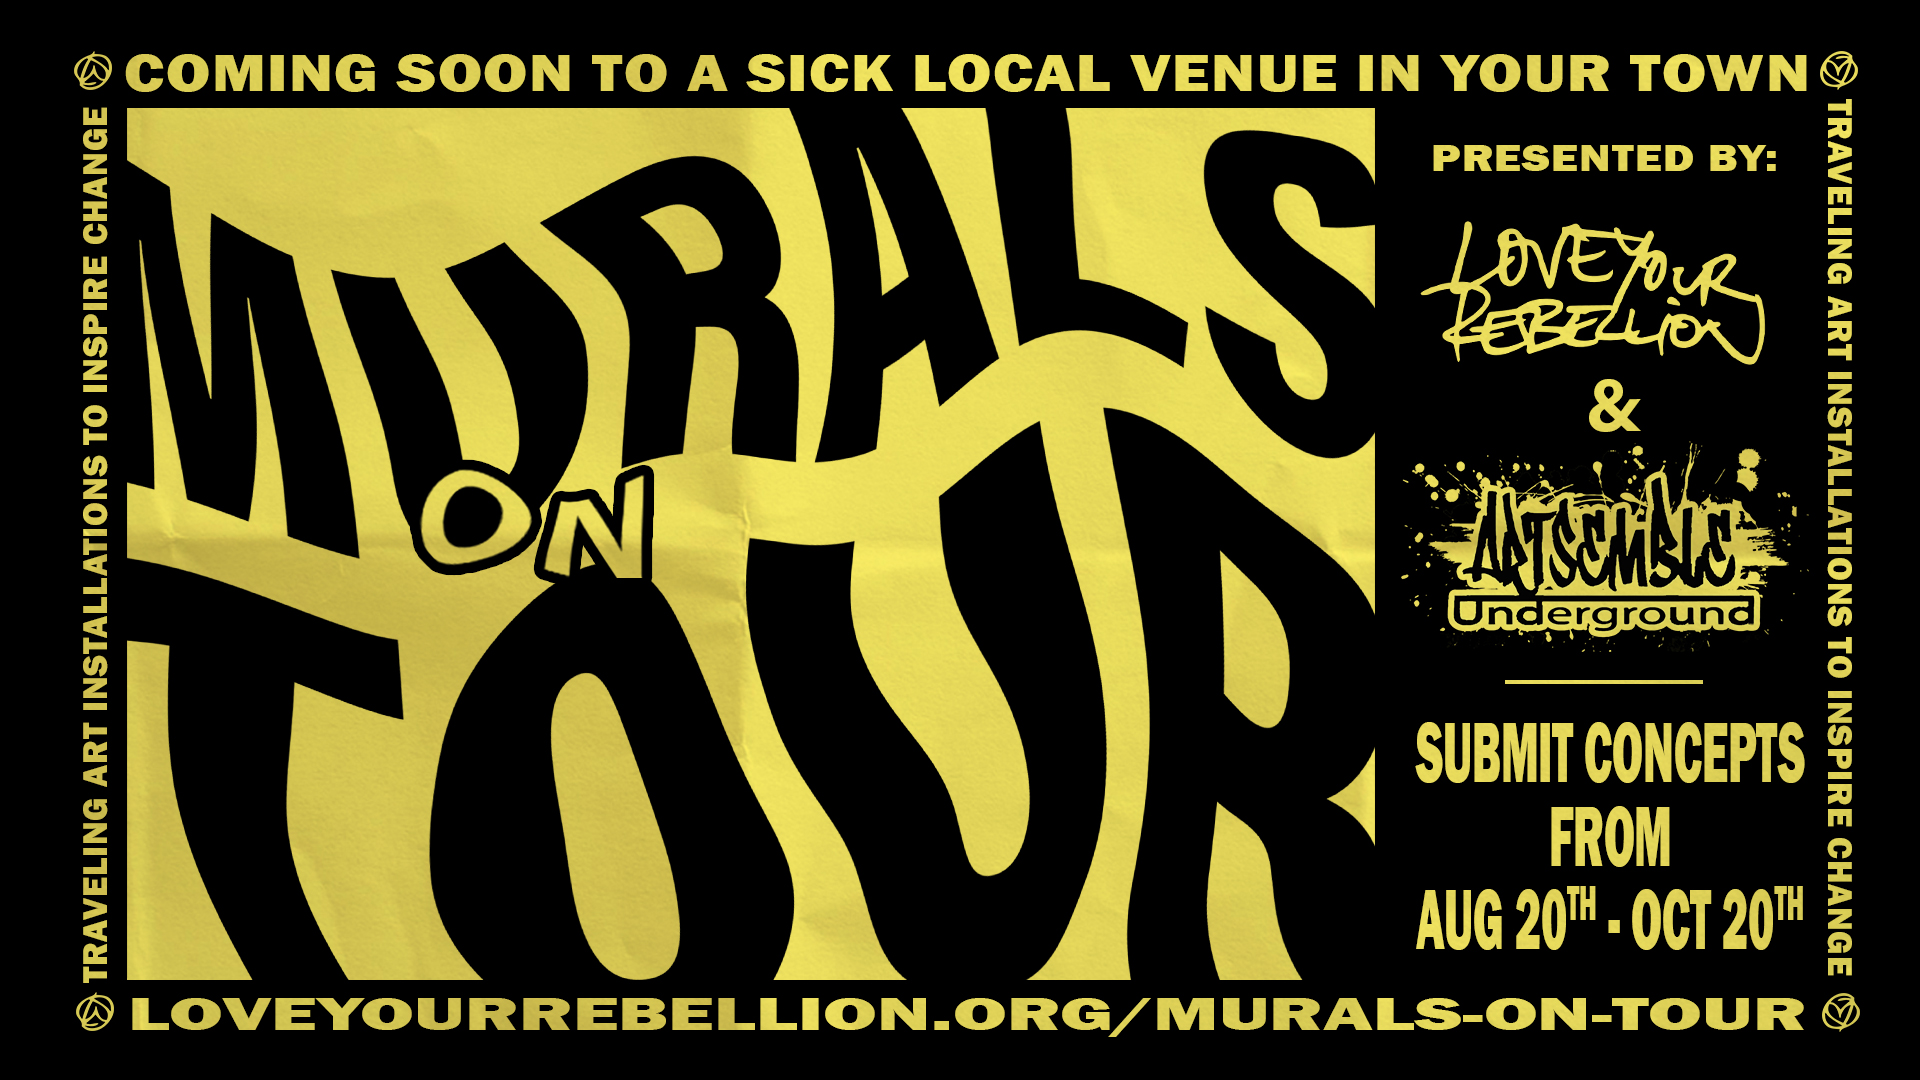 love your rebellion murals on tour